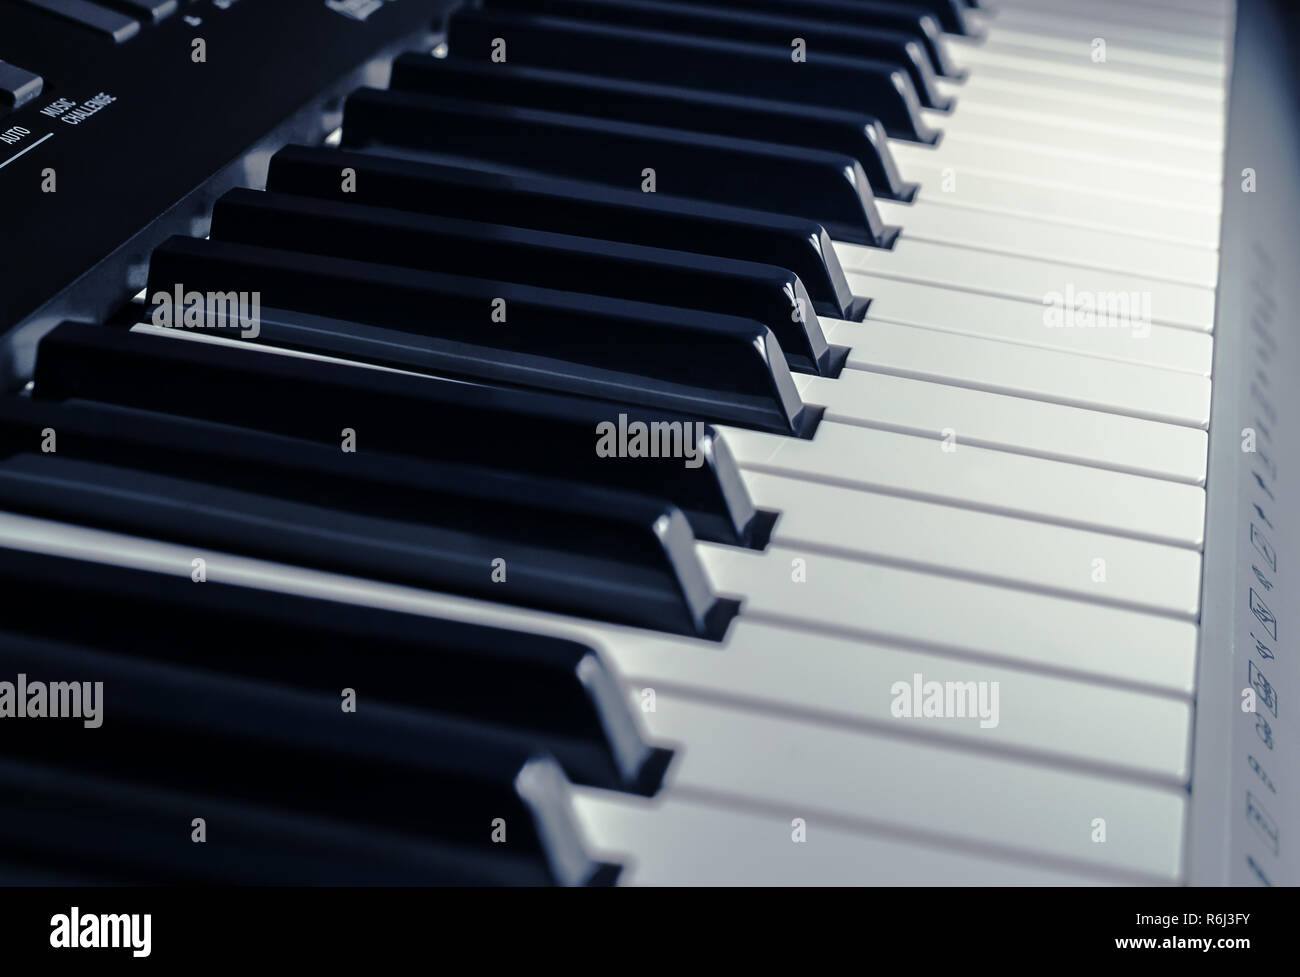 Photo of synthesizer buttons close up - Stock Image